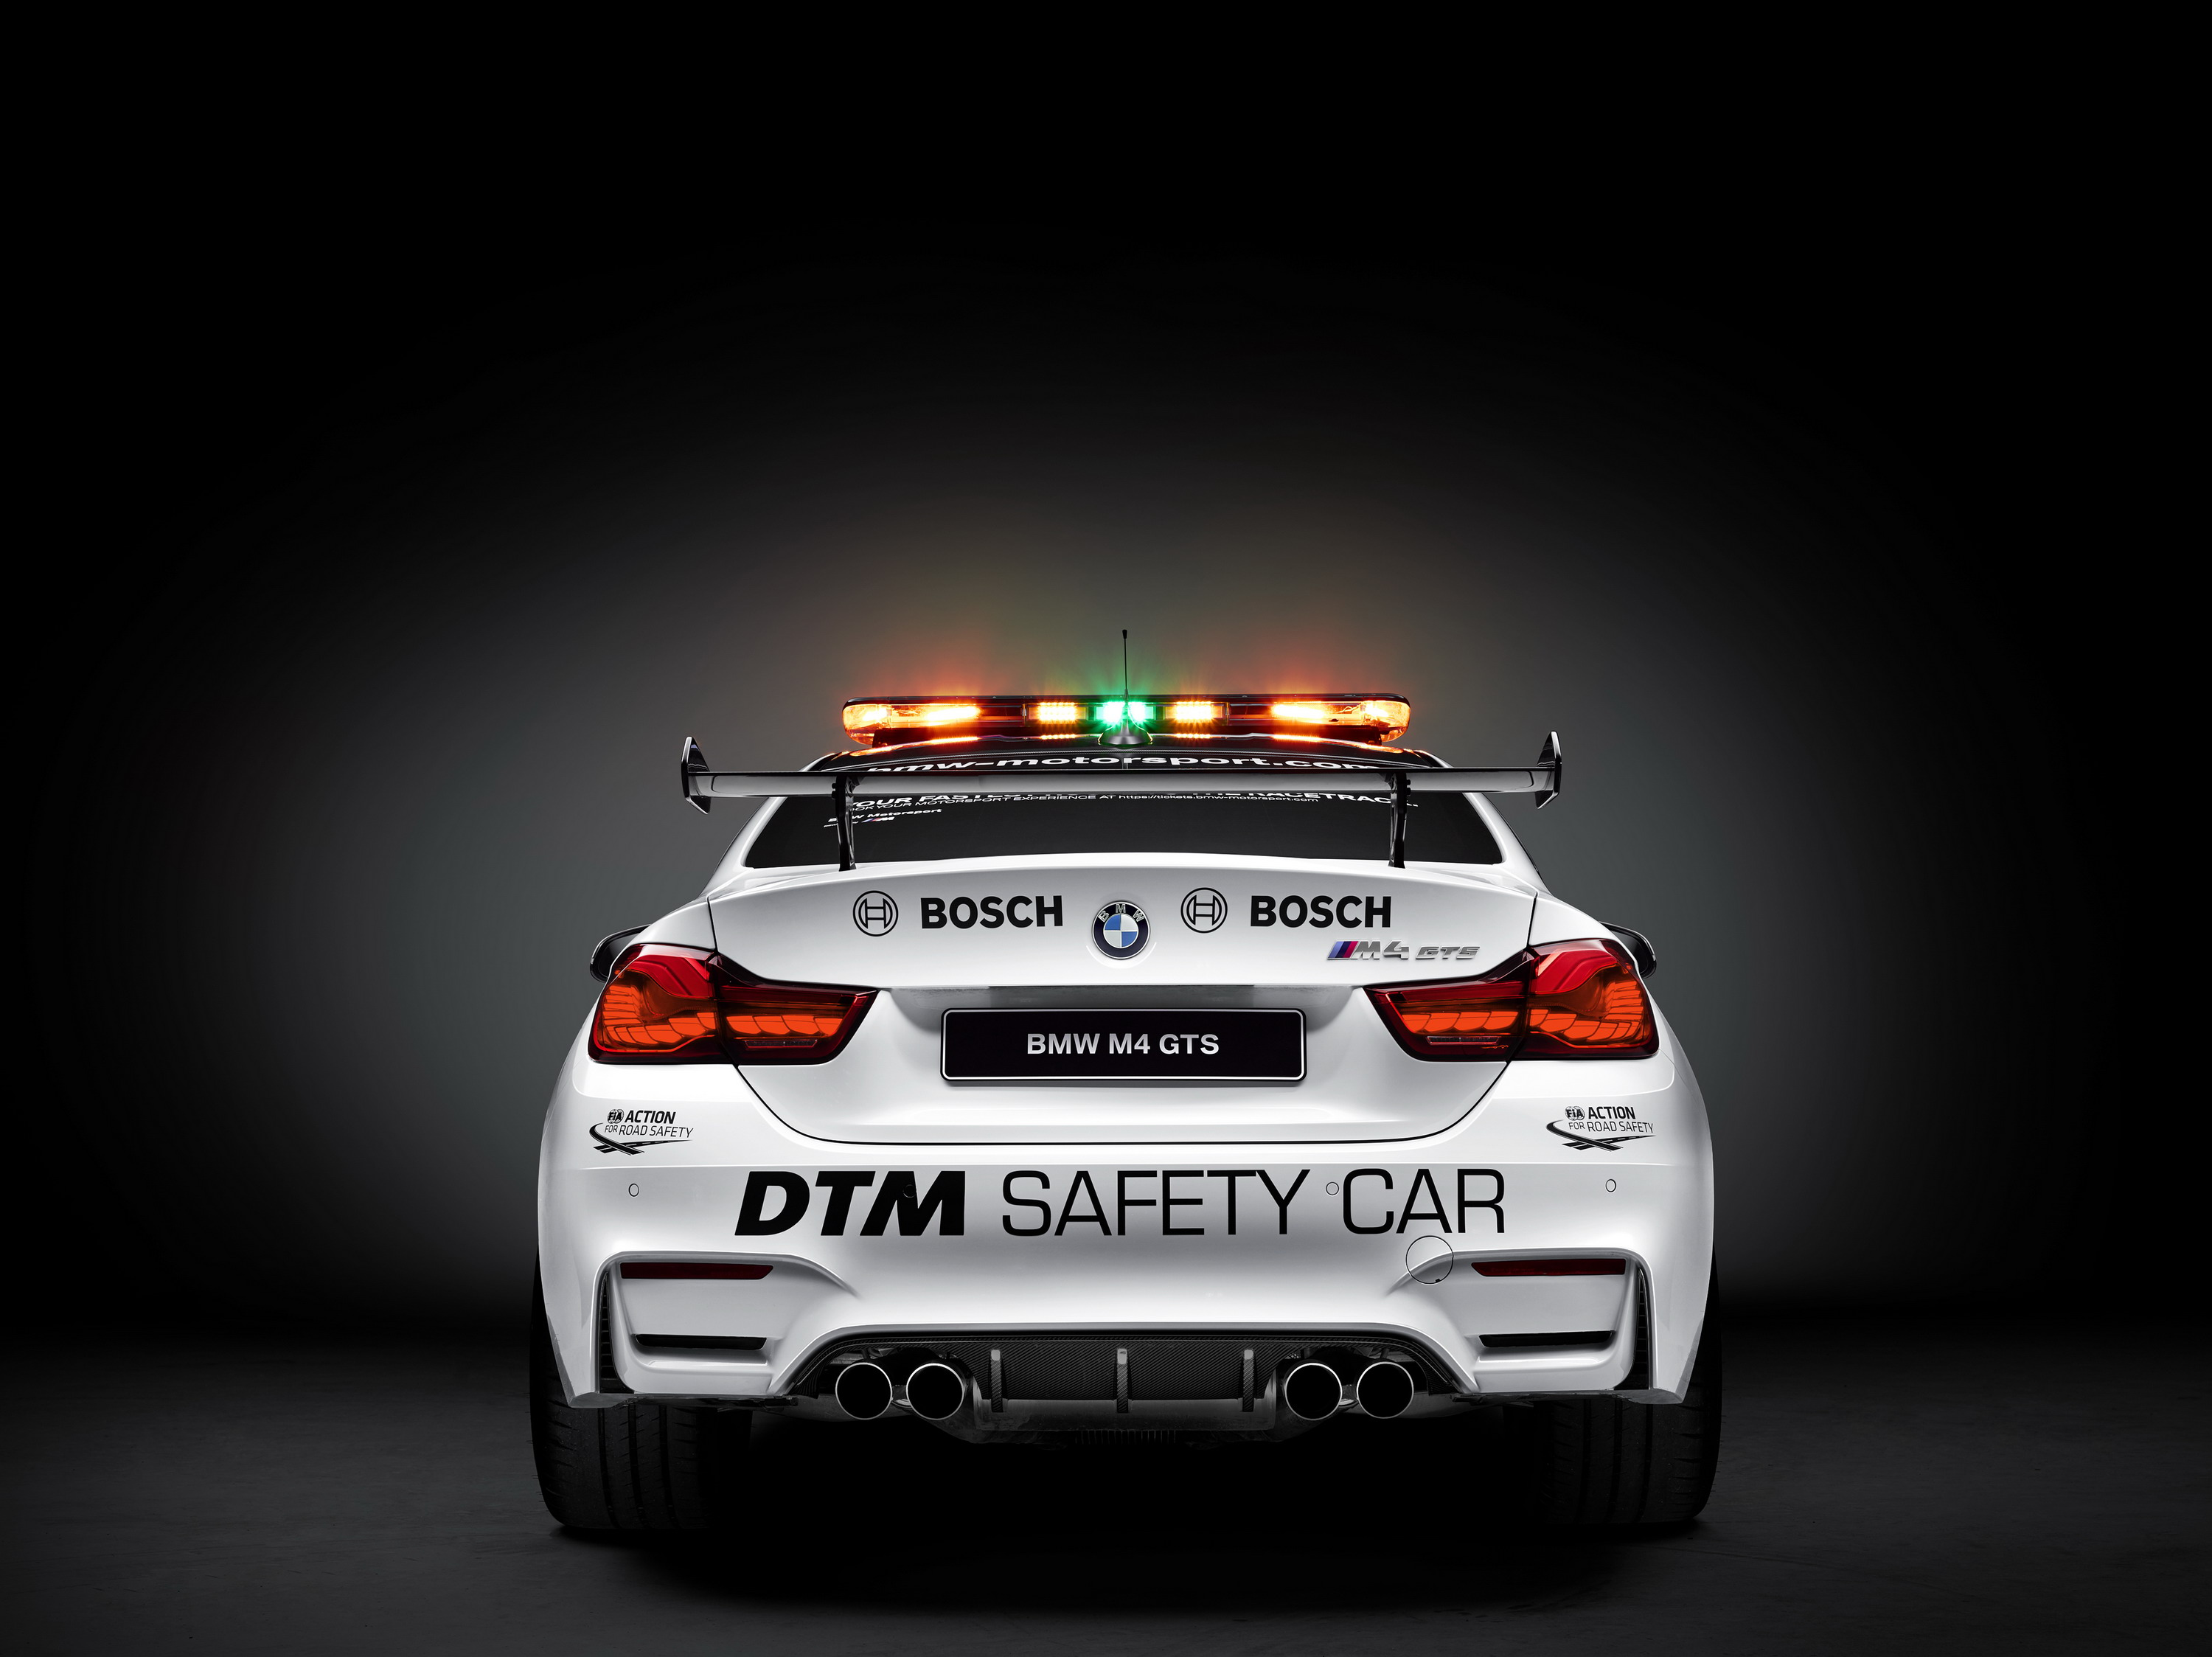 2016 bmw m4 gts dtm safety car gallery 674380 top speed. Black Bedroom Furniture Sets. Home Design Ideas